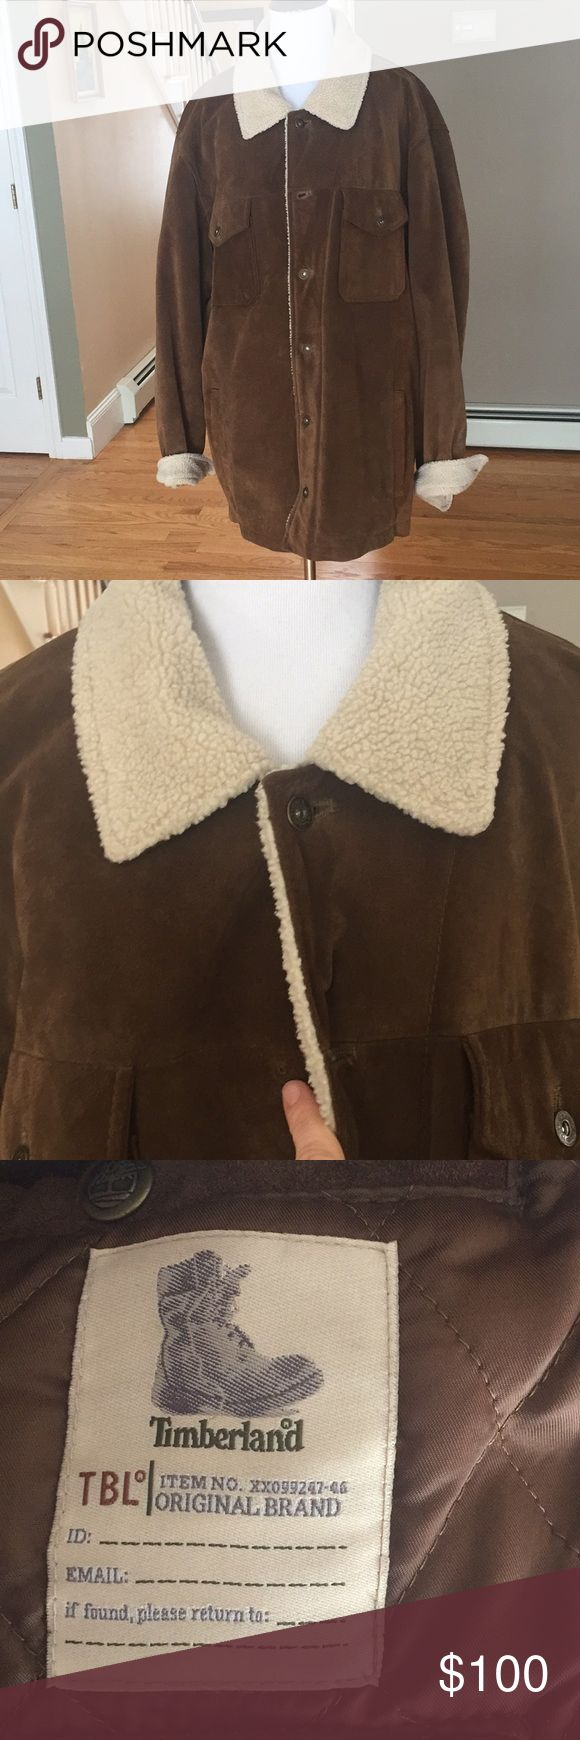 Timberland Cowhide leather jacket 🧥 Men's Authentic Timberland Cowhide leather jacket 🧥  Leather in Excellent Shape  *missing second button from top Timberland Jackets & Coats Military & Field